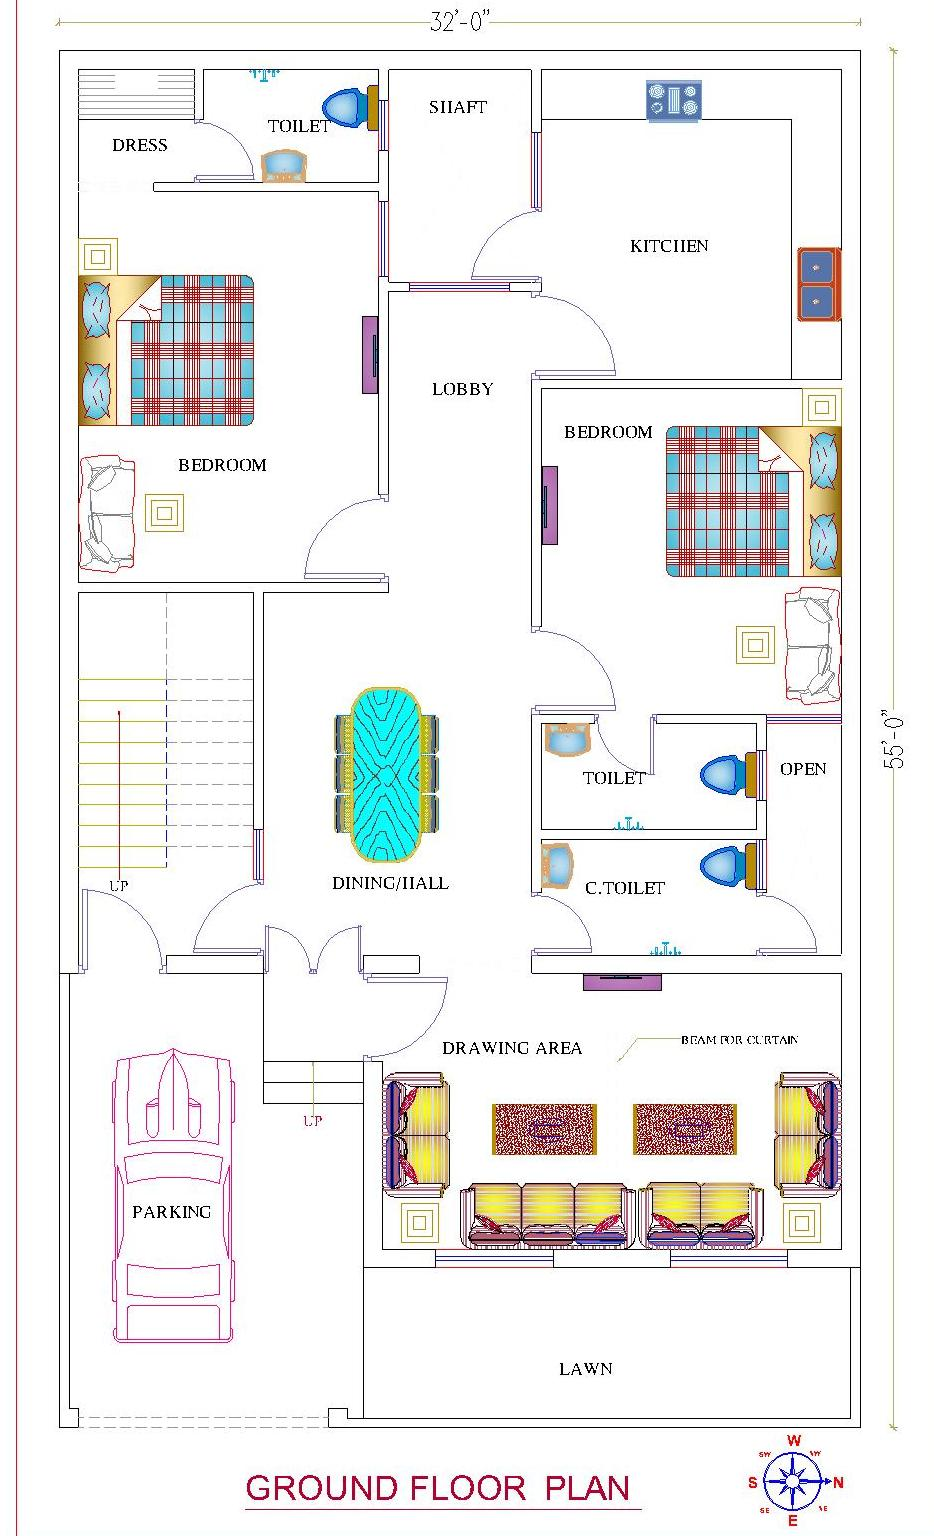 gallrey5f5ef50008493GROUND FLOOR PLAN.jpg